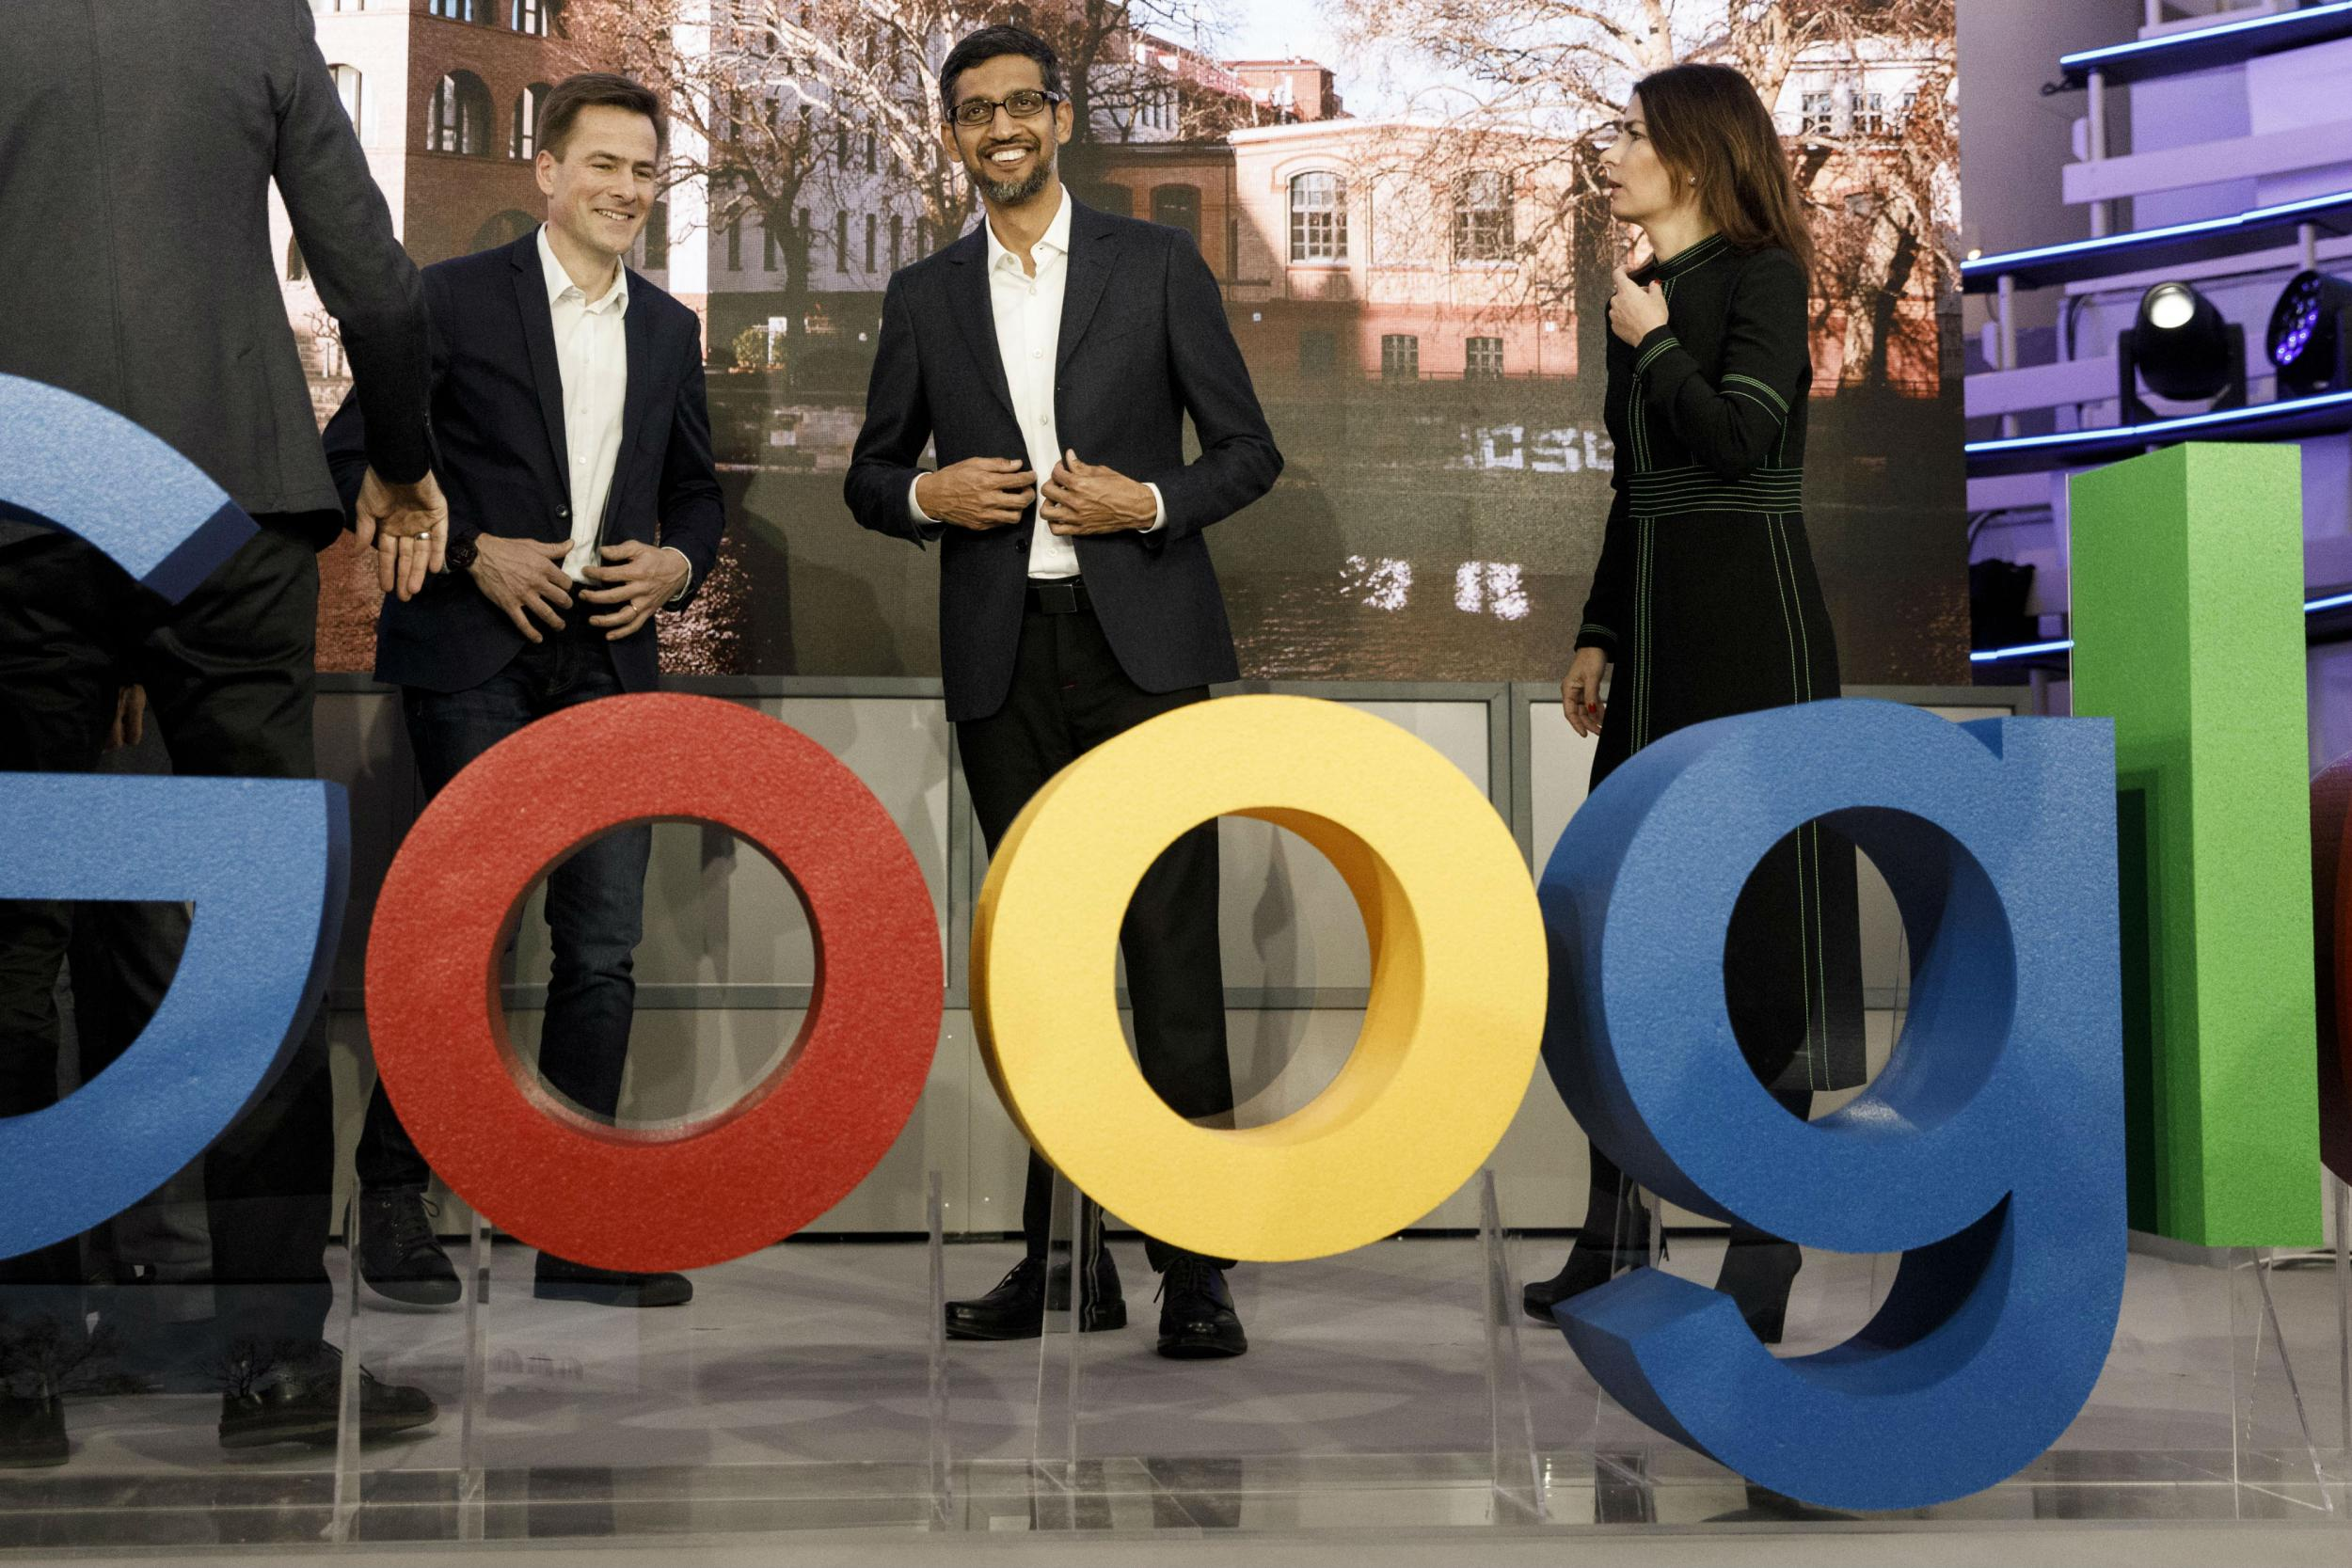 Google beats Wall Street expectations in strong fourth quarter earnings